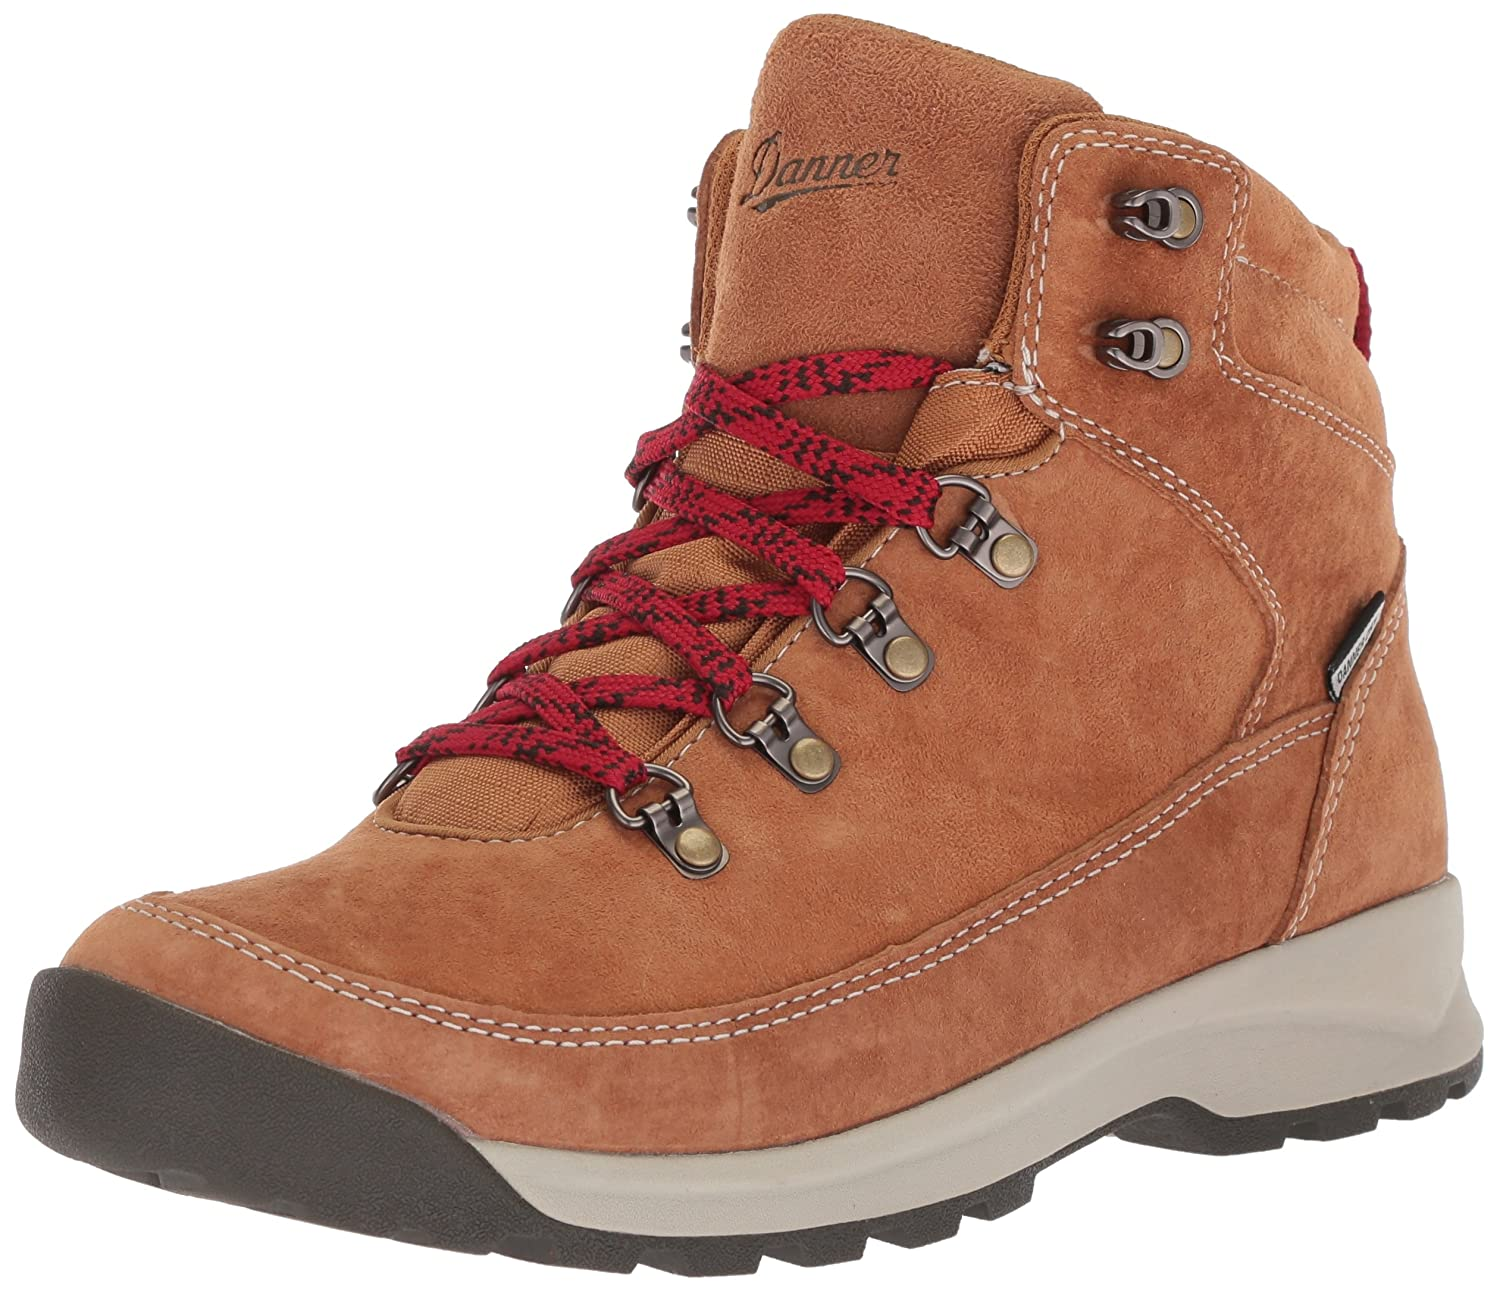 Danner Women's Adrika Hiker Hiking Boot B072JV2QHW 7.5 M US|Sienna